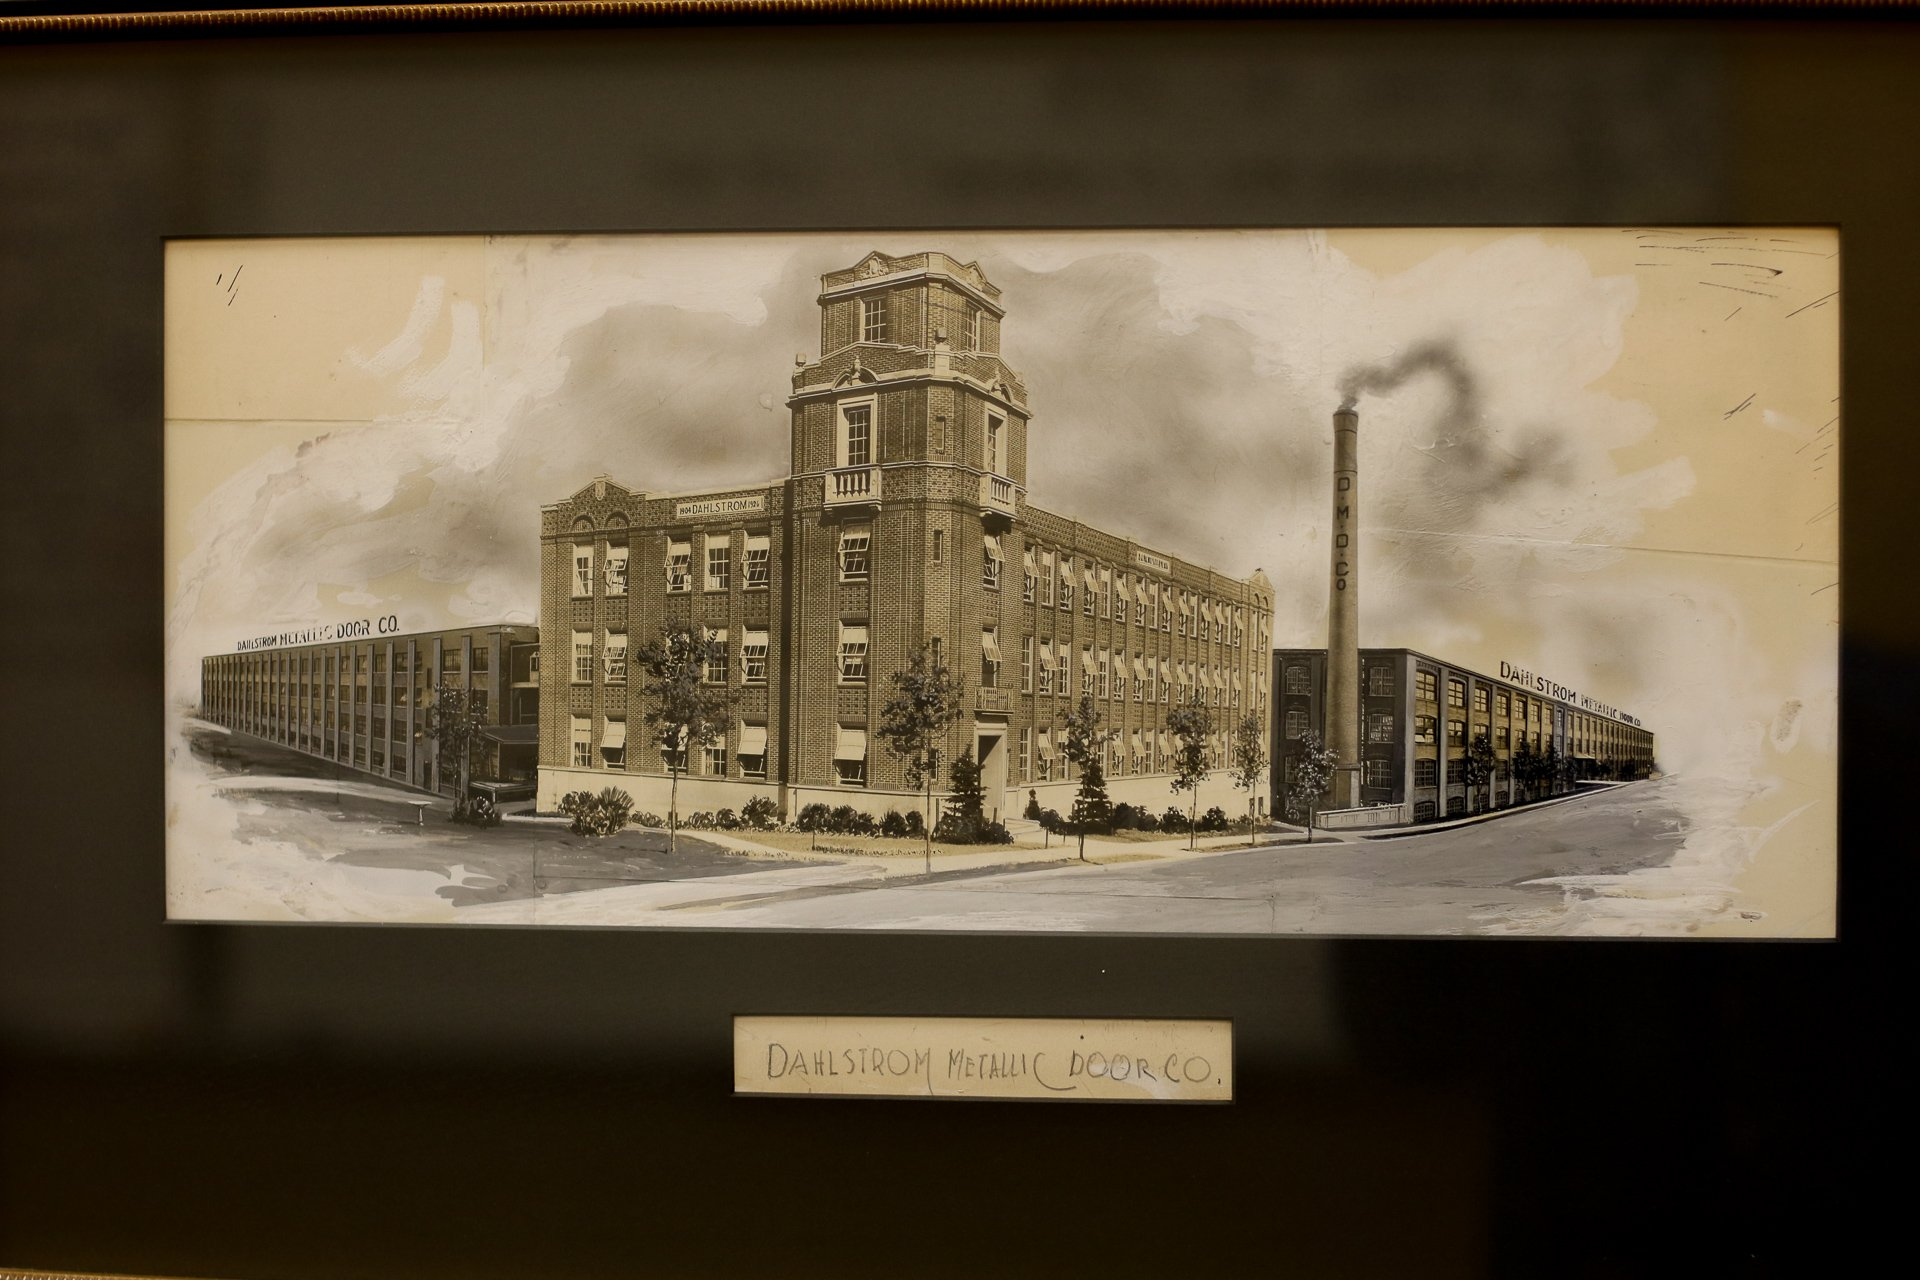 Dahlstrom Roll Form Company Turns 115 Years Old